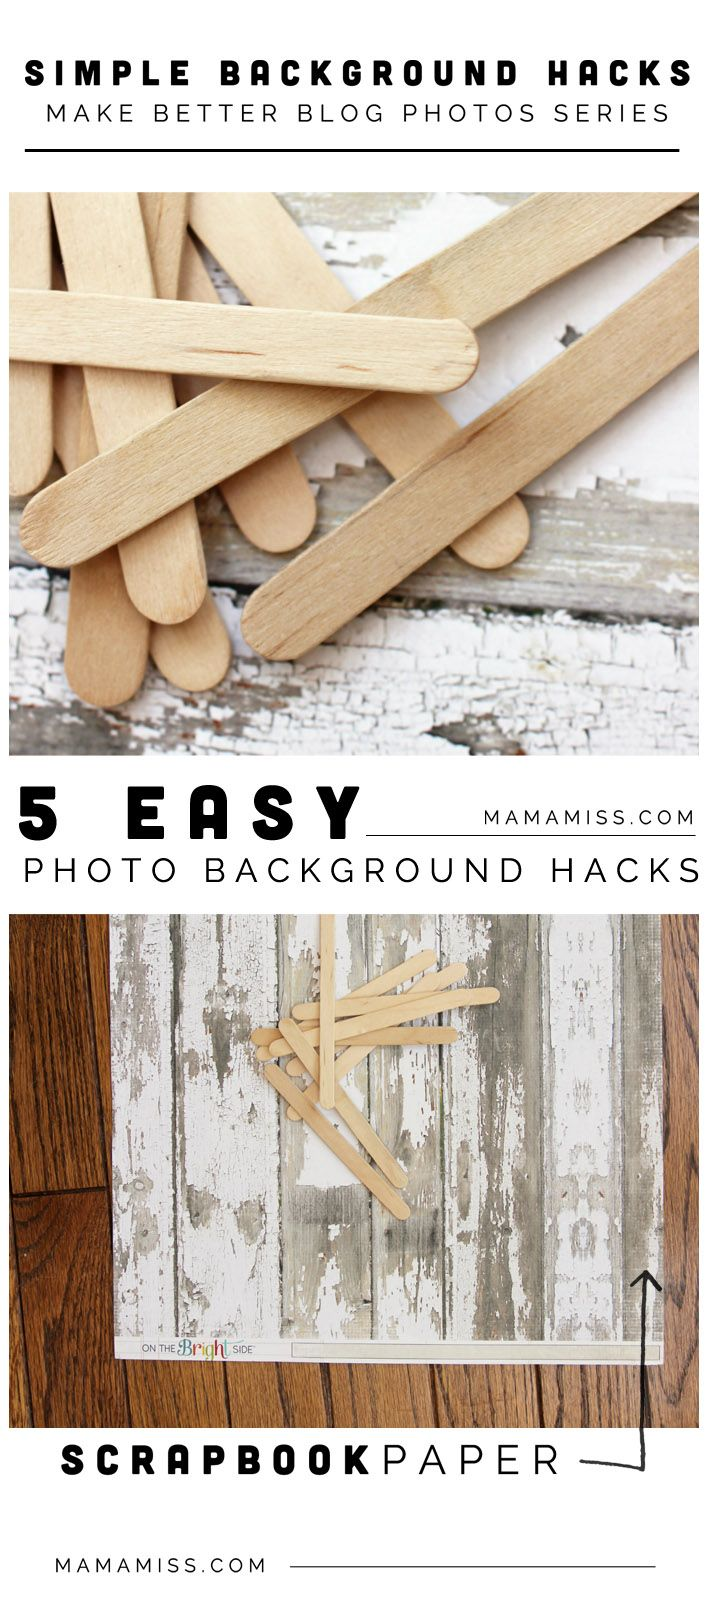 Blog Photography Tips | Photography Tips | Blogging Tips | 5 Simple Photo Background Hacks--very helpful tips for taking the best photos for your blog.